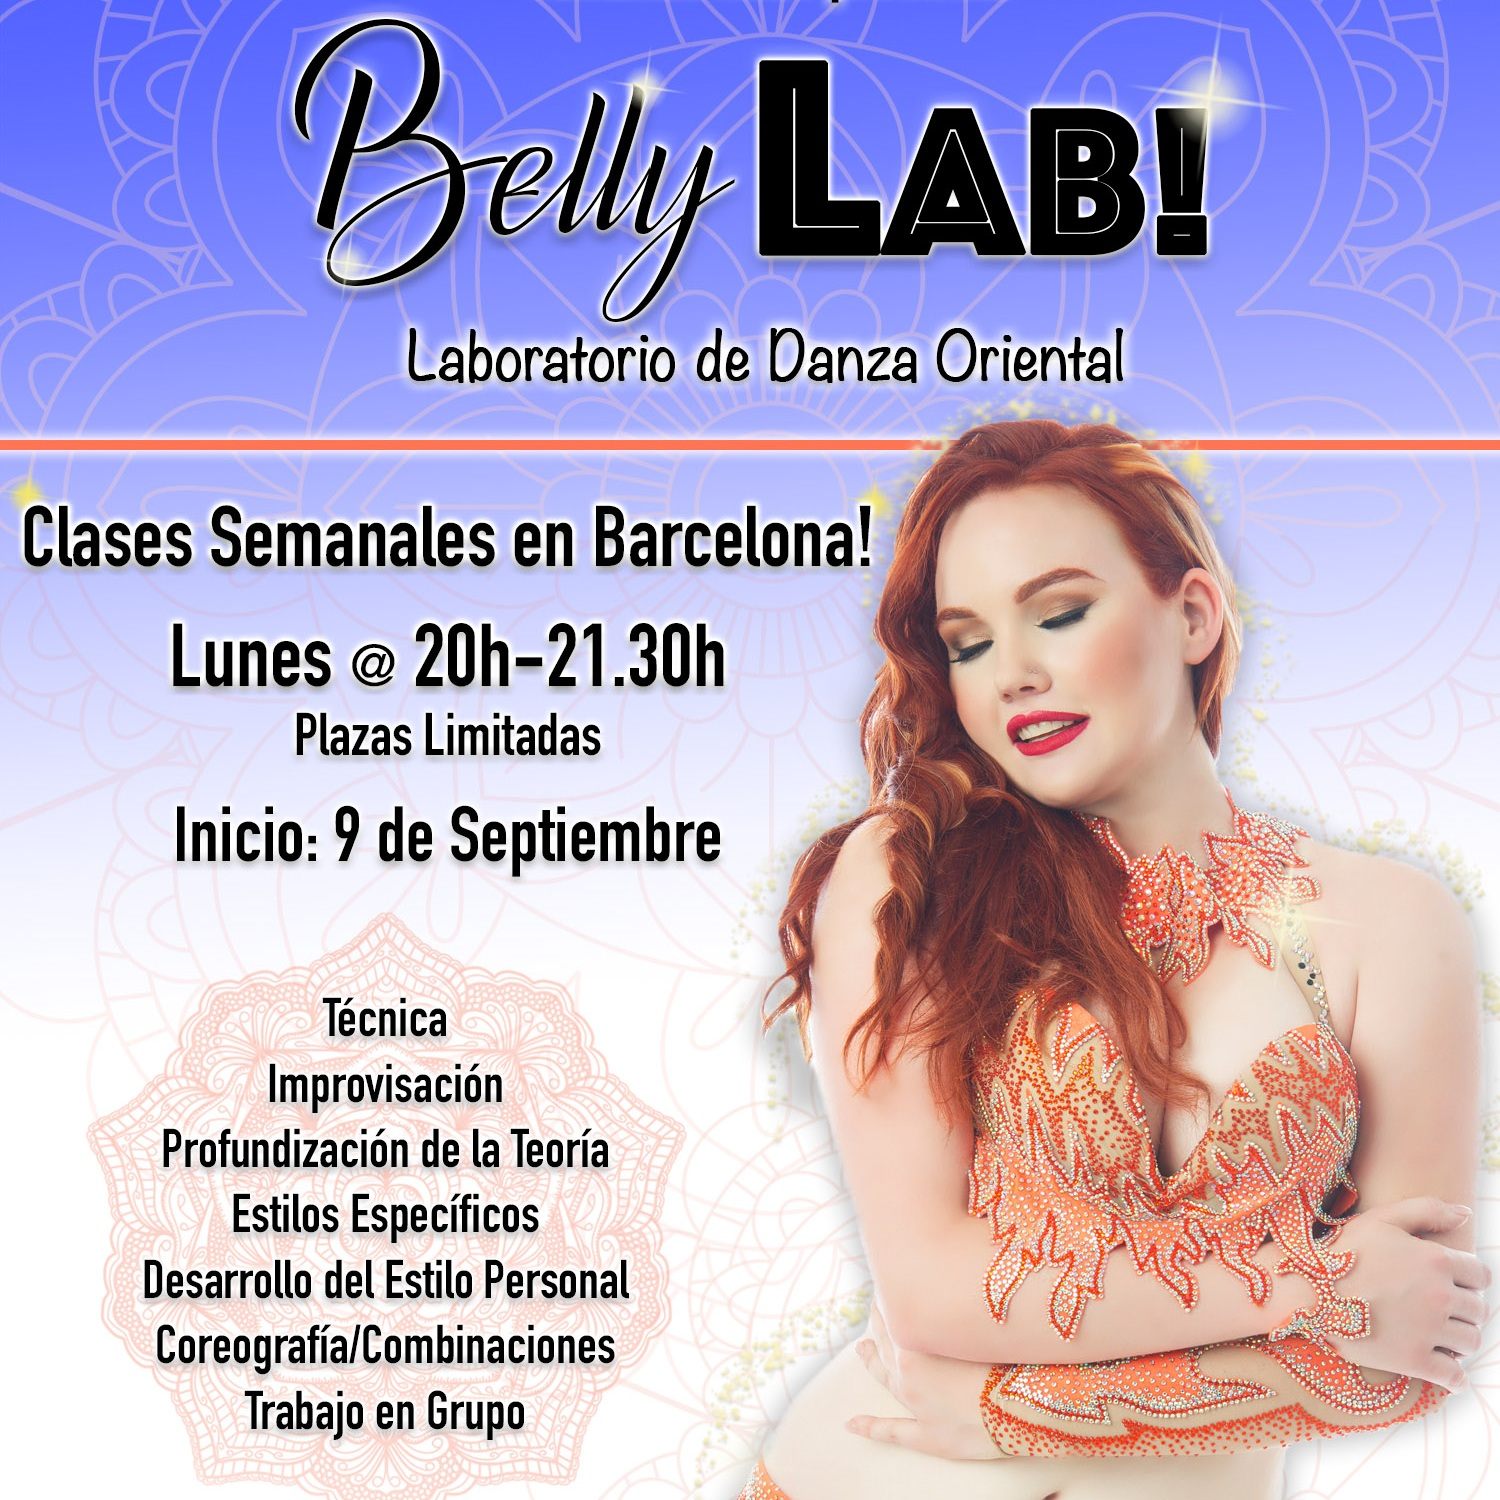 BellyLab in Barcelona! - BellyLab - Weekly ClassesBarcelona, SpainAmanda Rose por primera vez impartirá clases semanales en Barcelona con inicio el 9 de Septiembre 2019. Más información click aquí!Amanda Rose is currently located in Barcelona and will begin weekly BellyLab classes starting September 9th, 2019. Click here for more information on BellyLab in Barcelona!